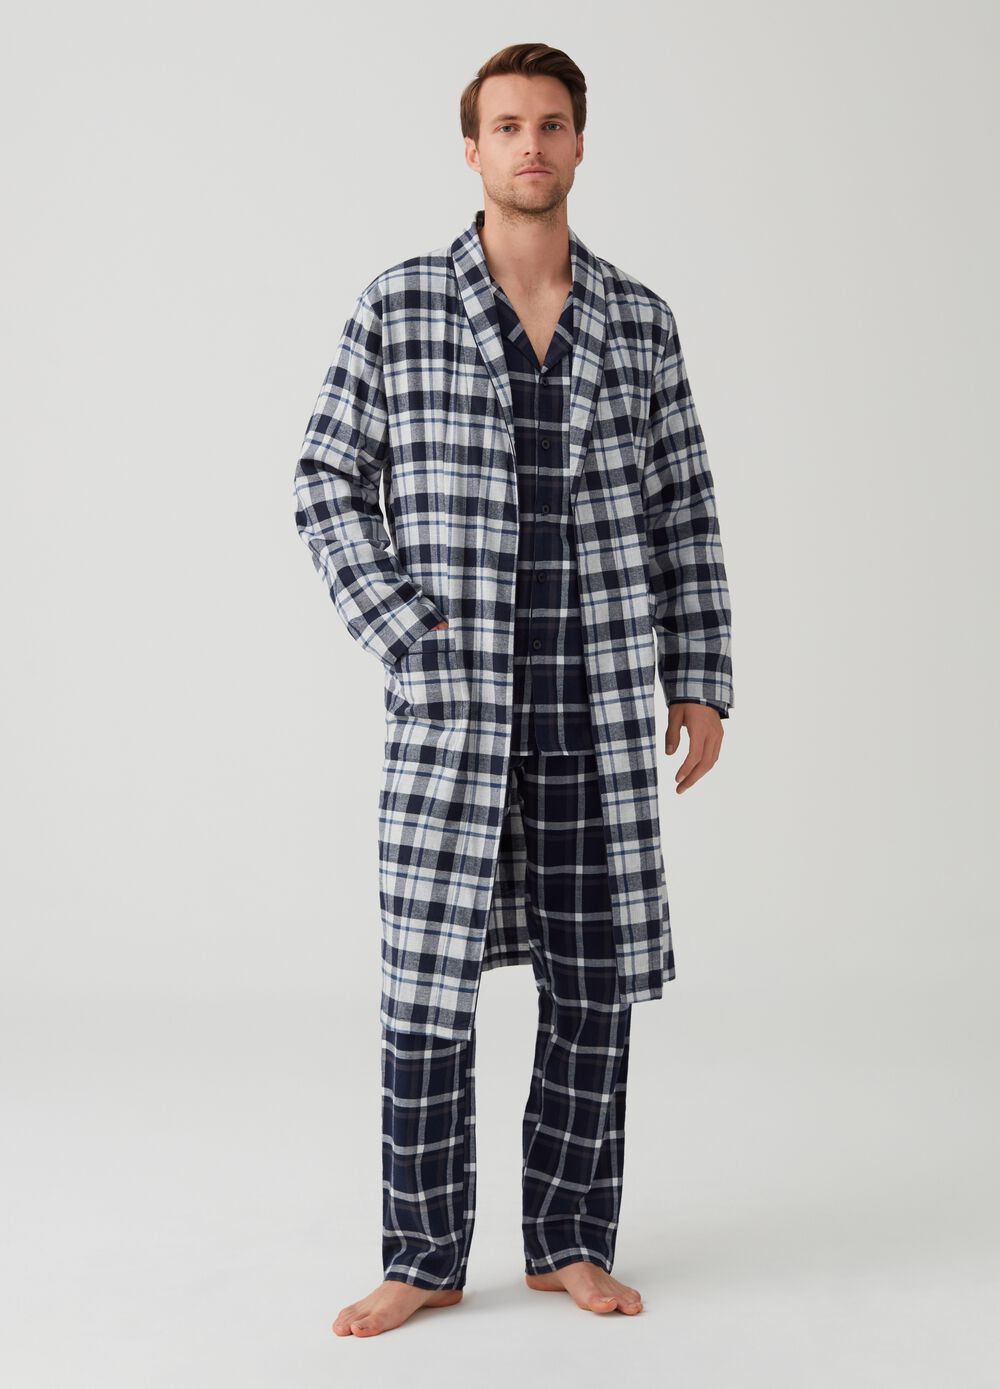 Flannel dressing gown with check pattern